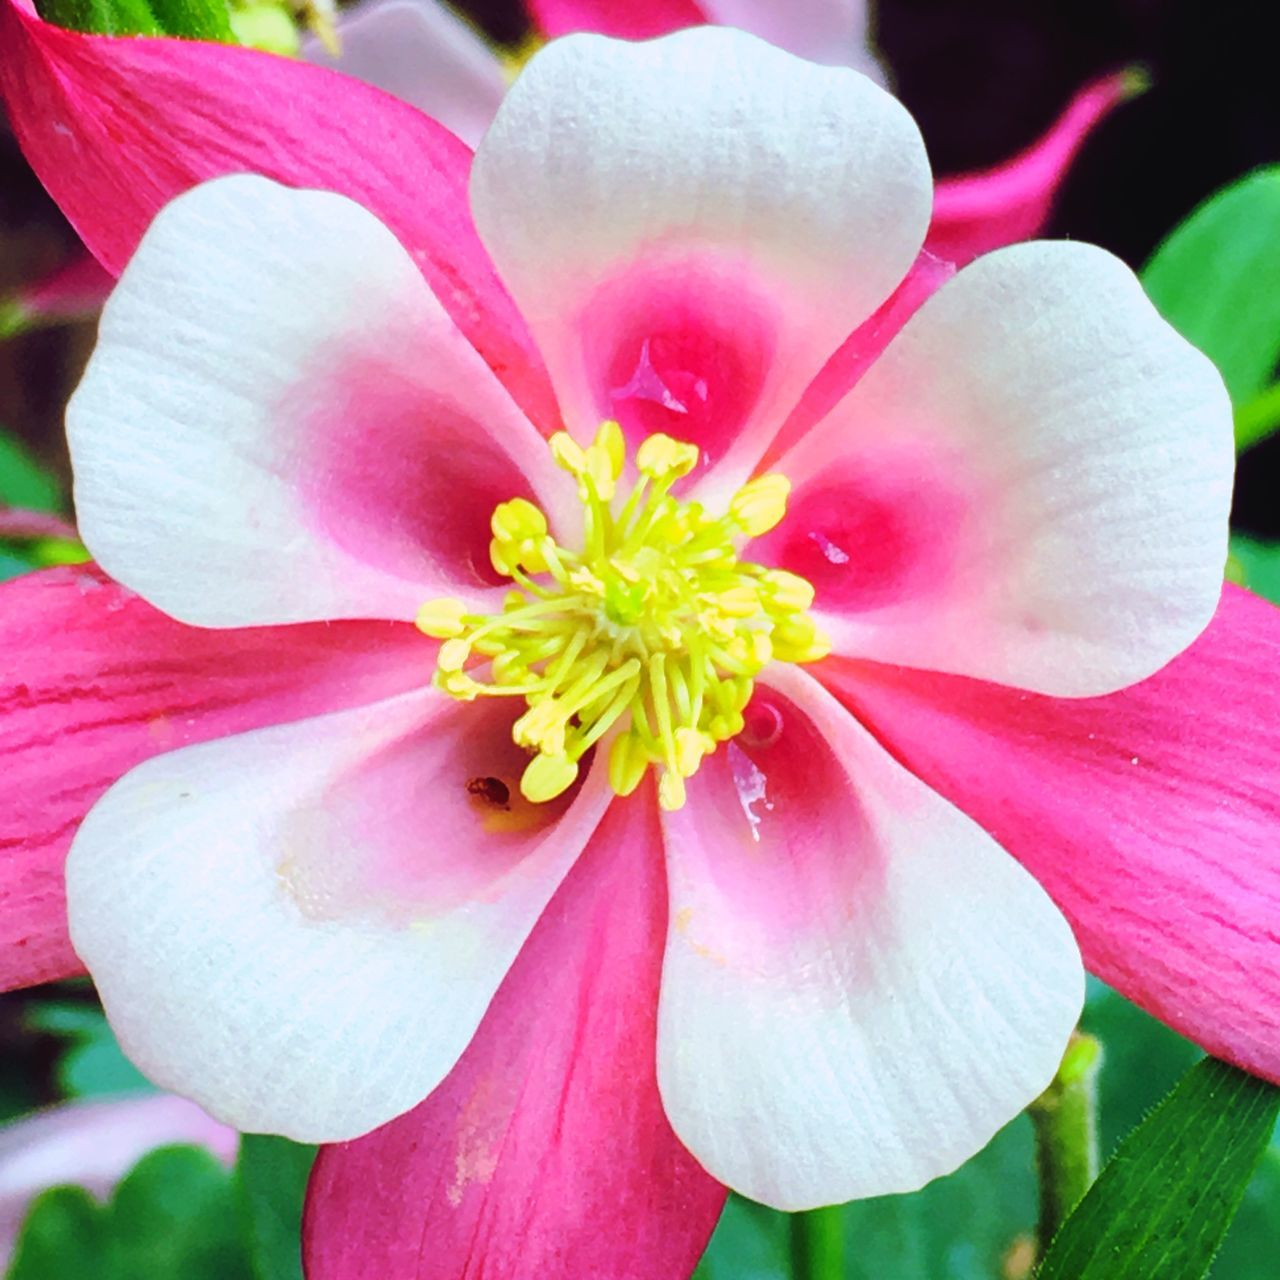 Flower Tropical Flowers Pink And White Open Neon Exotic Warm Colors Thrive Petals🌸 Face Value